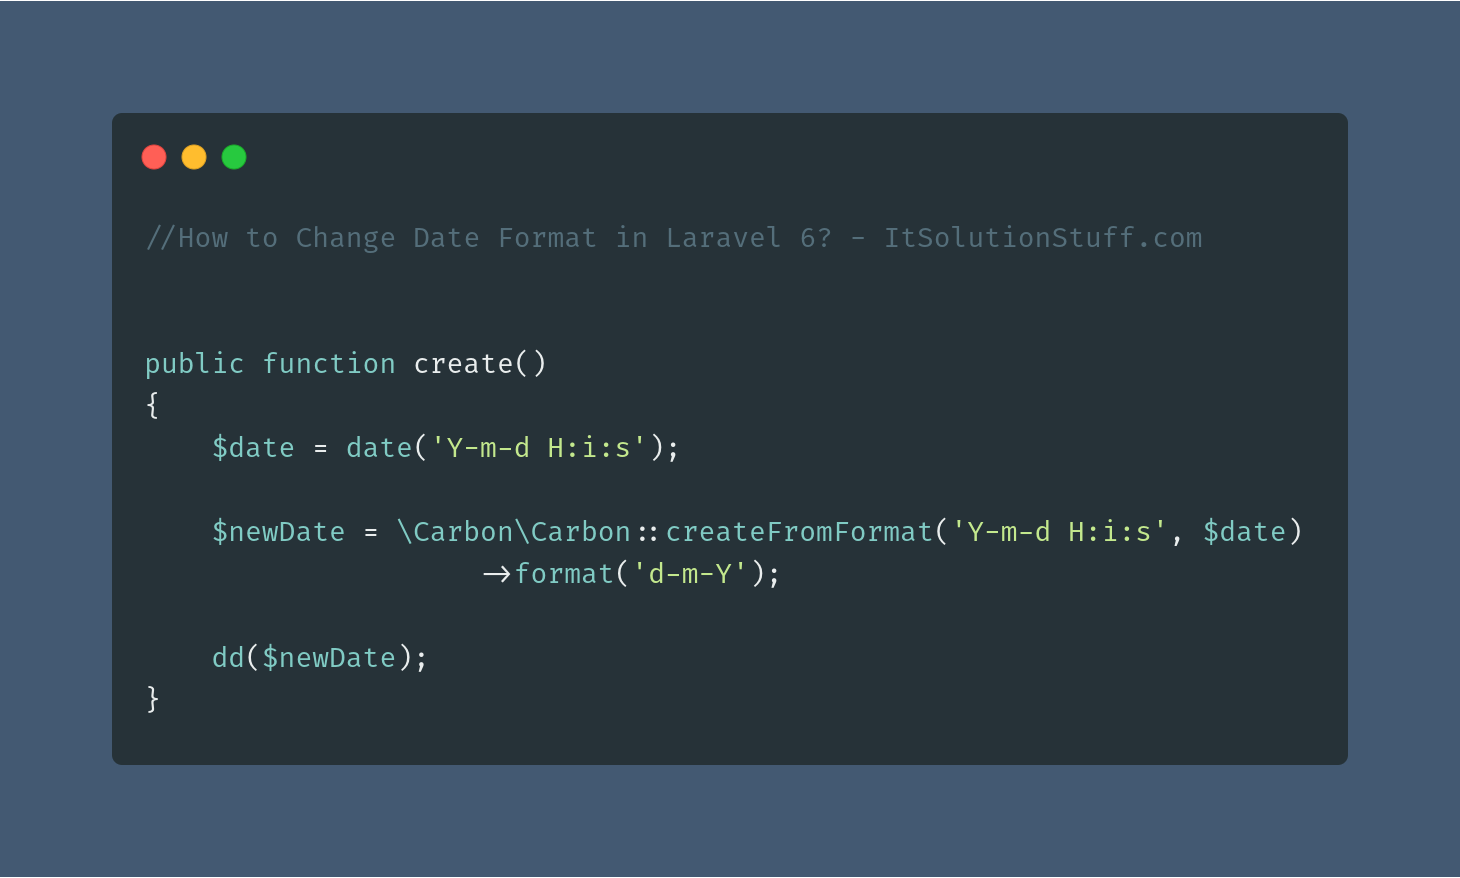 How to Change Date Format in Laravel 7/6?